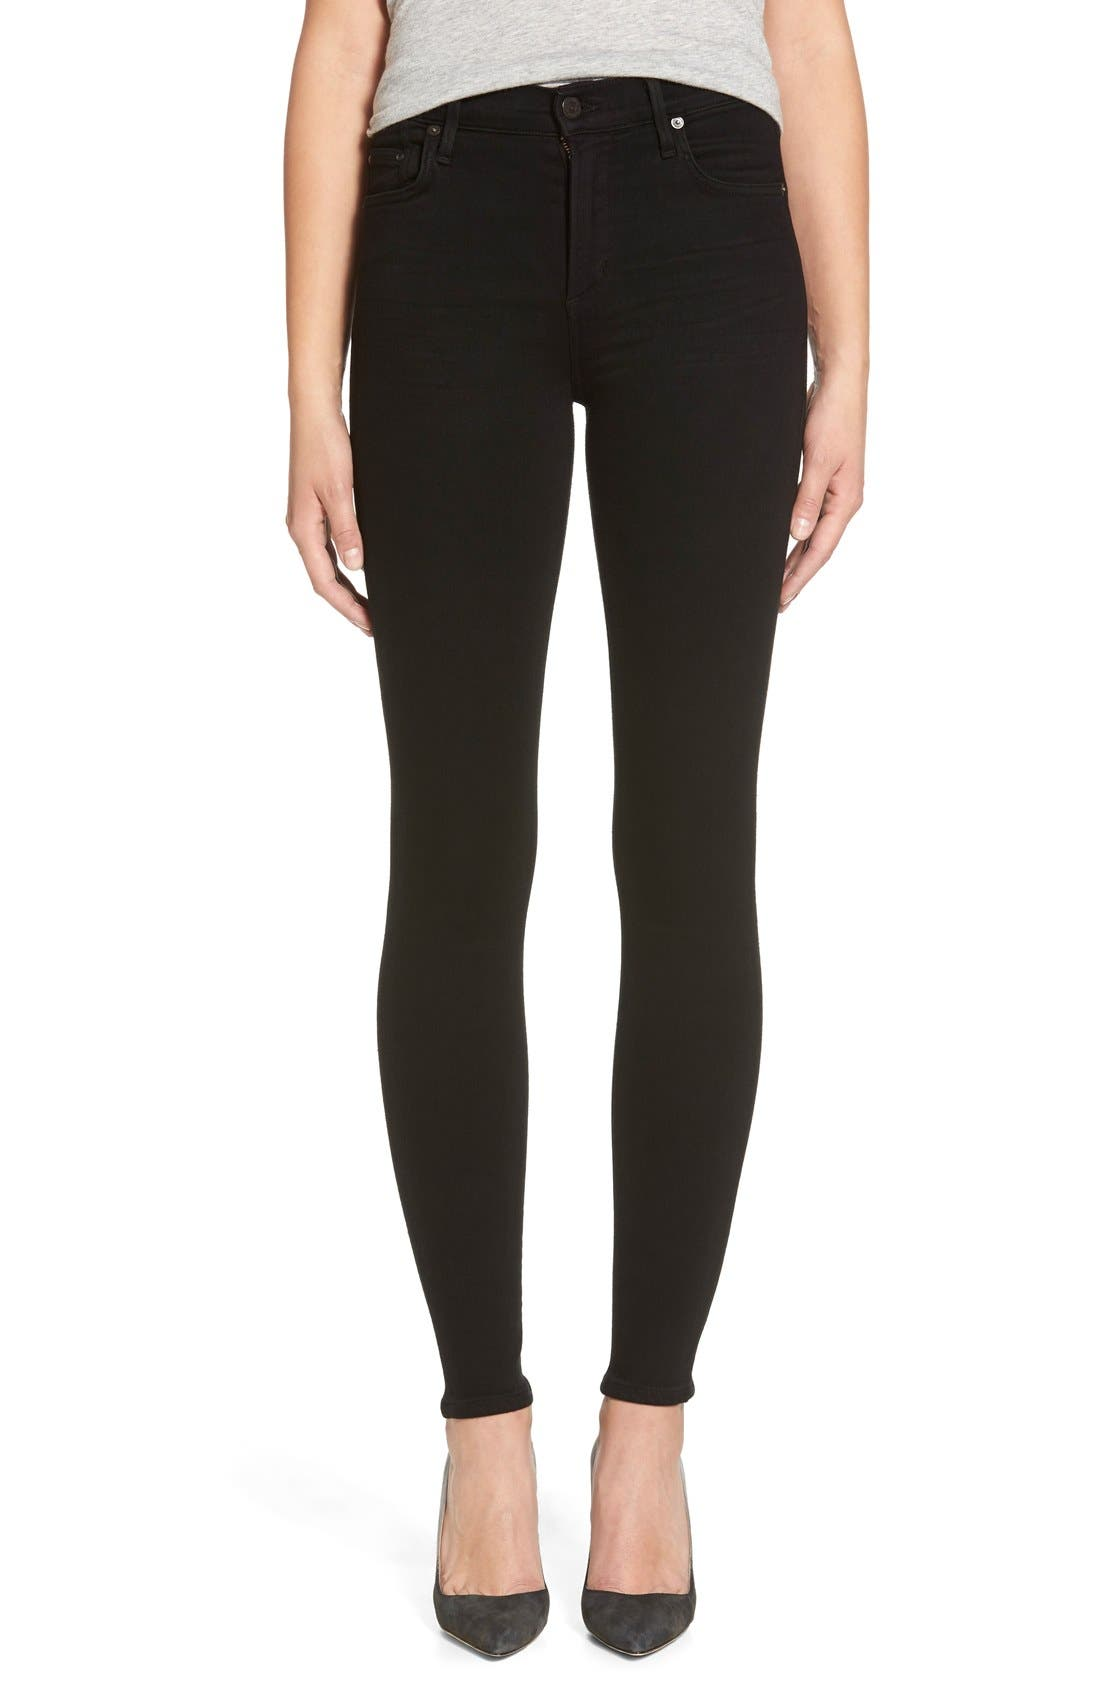 Alternate Image 1 Selected - Citizens of Humanity Rocket High Waist Skinny Jeans (Black)